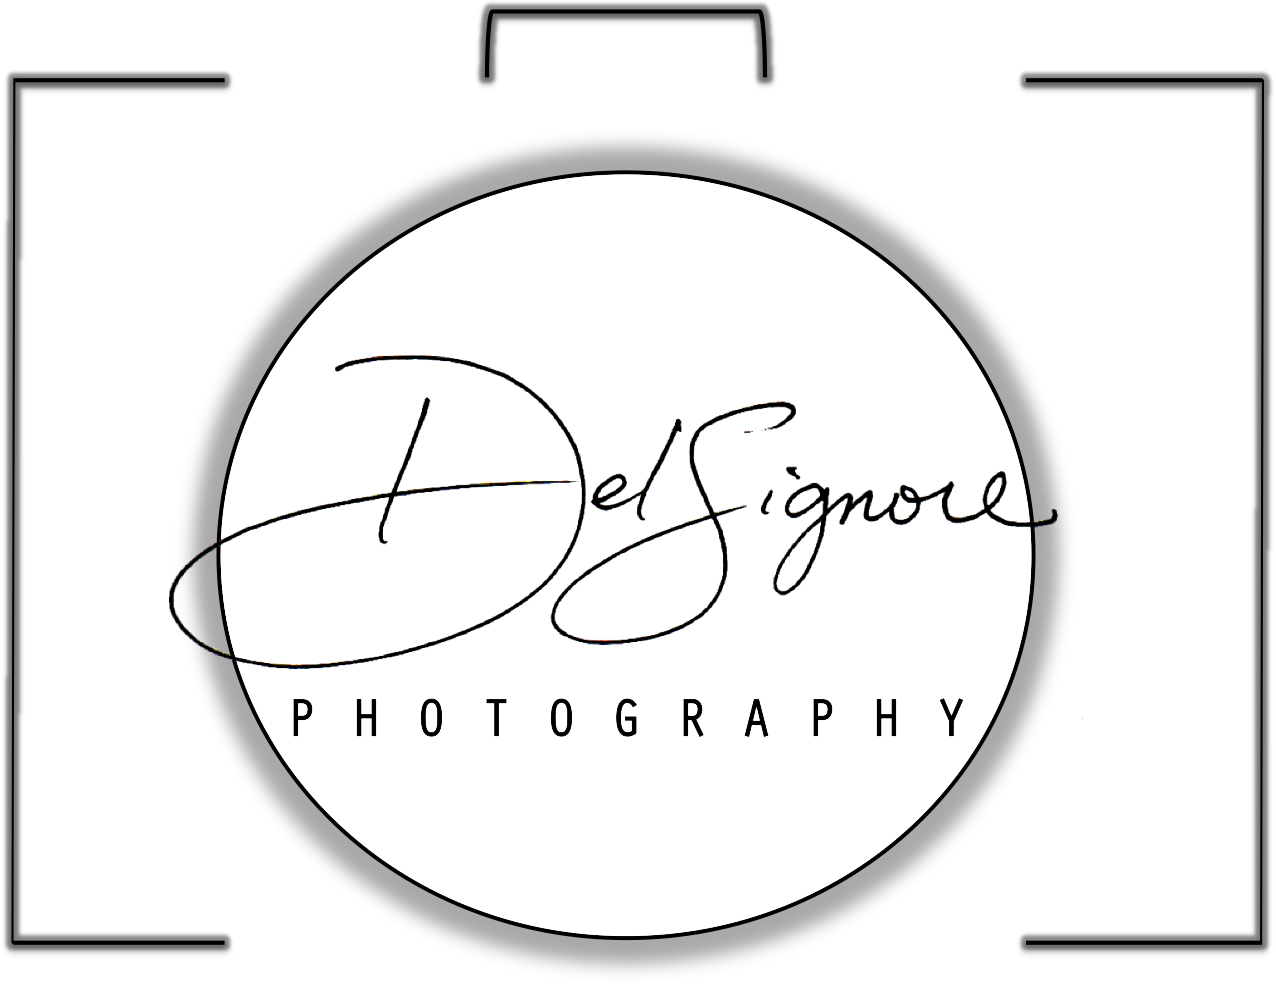 DelSignore Photography